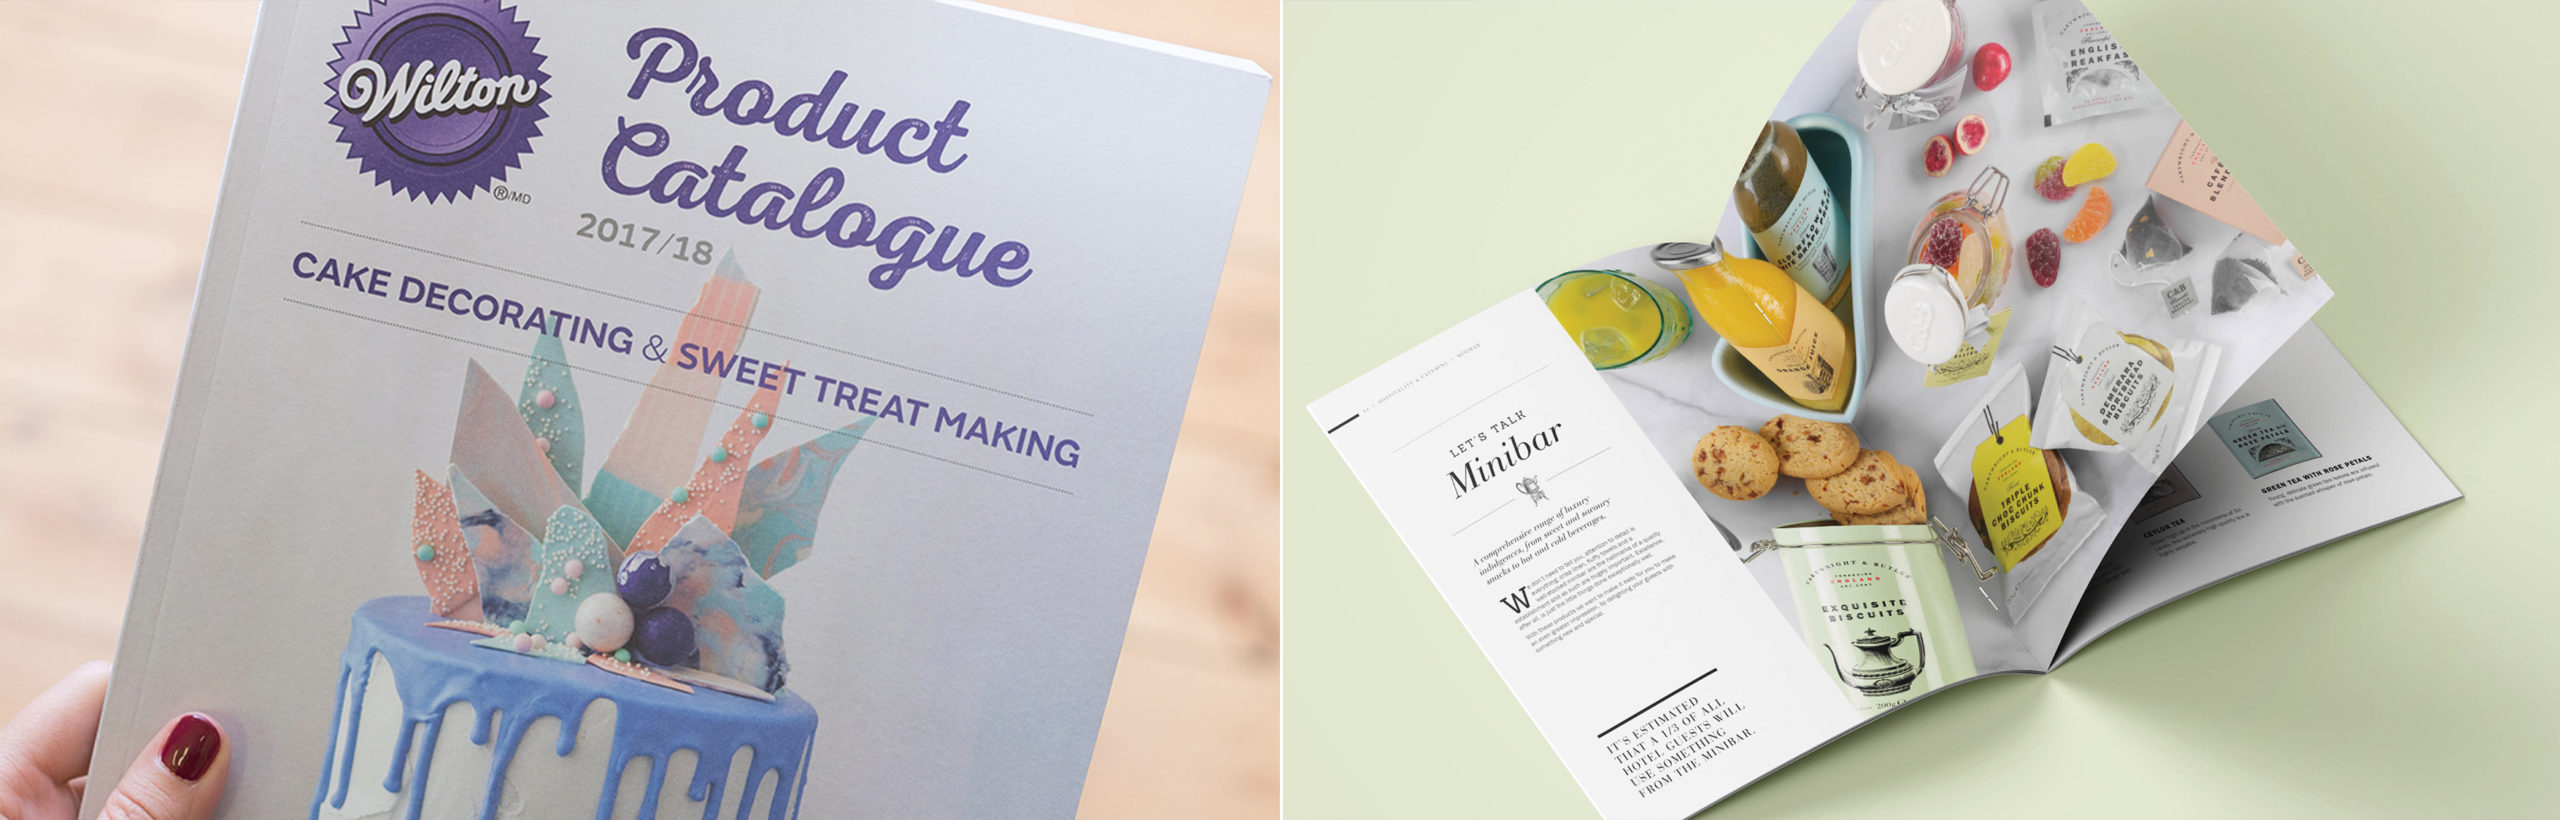 Print Design Services for Food & Drink businesses by Toast Food